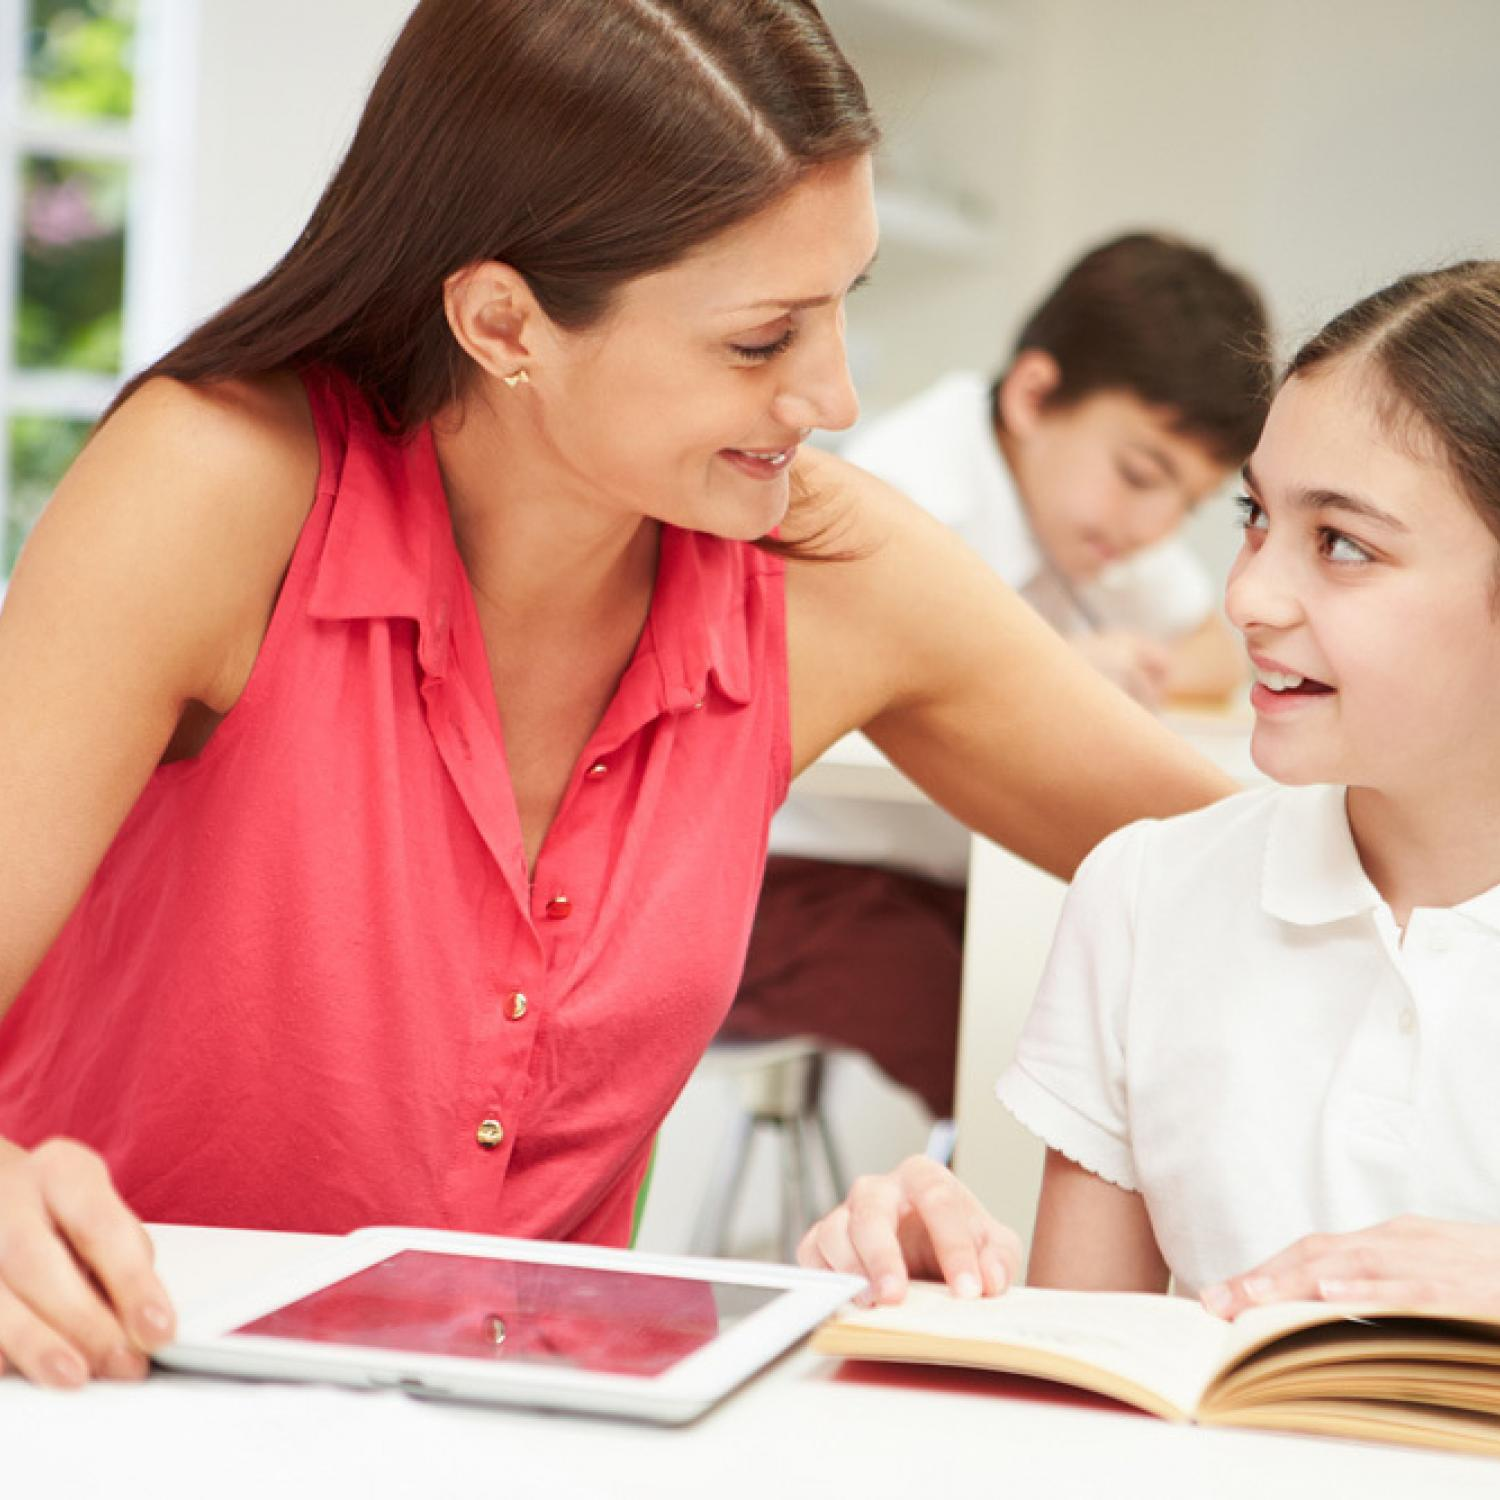 Children's homework help sites